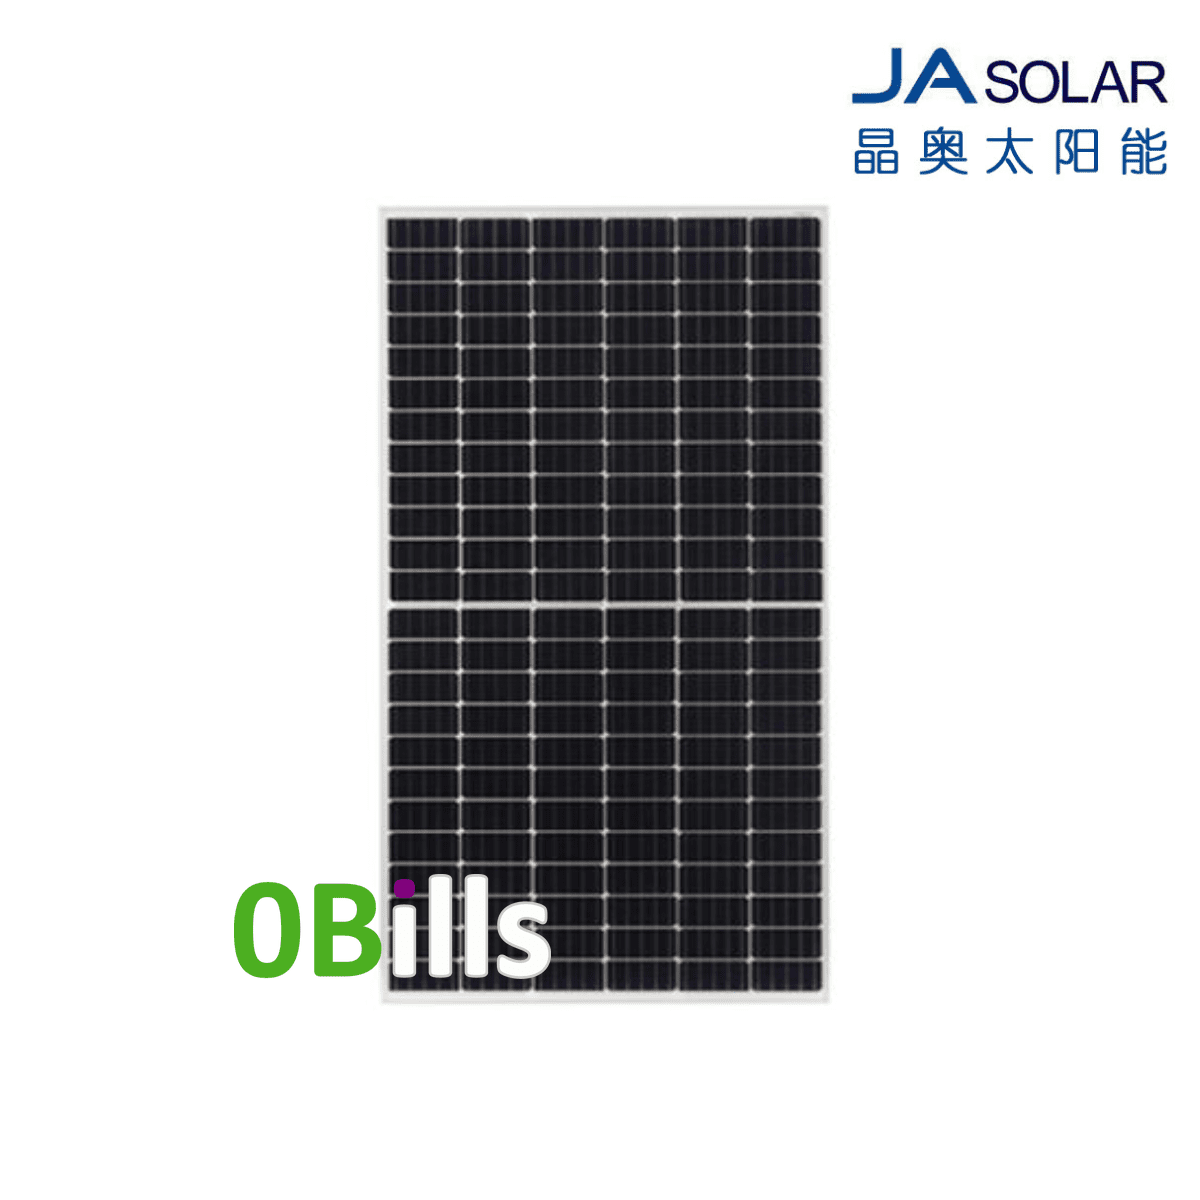 JA Solar JAM60S20-385/MR 385W Solar Panel MCS